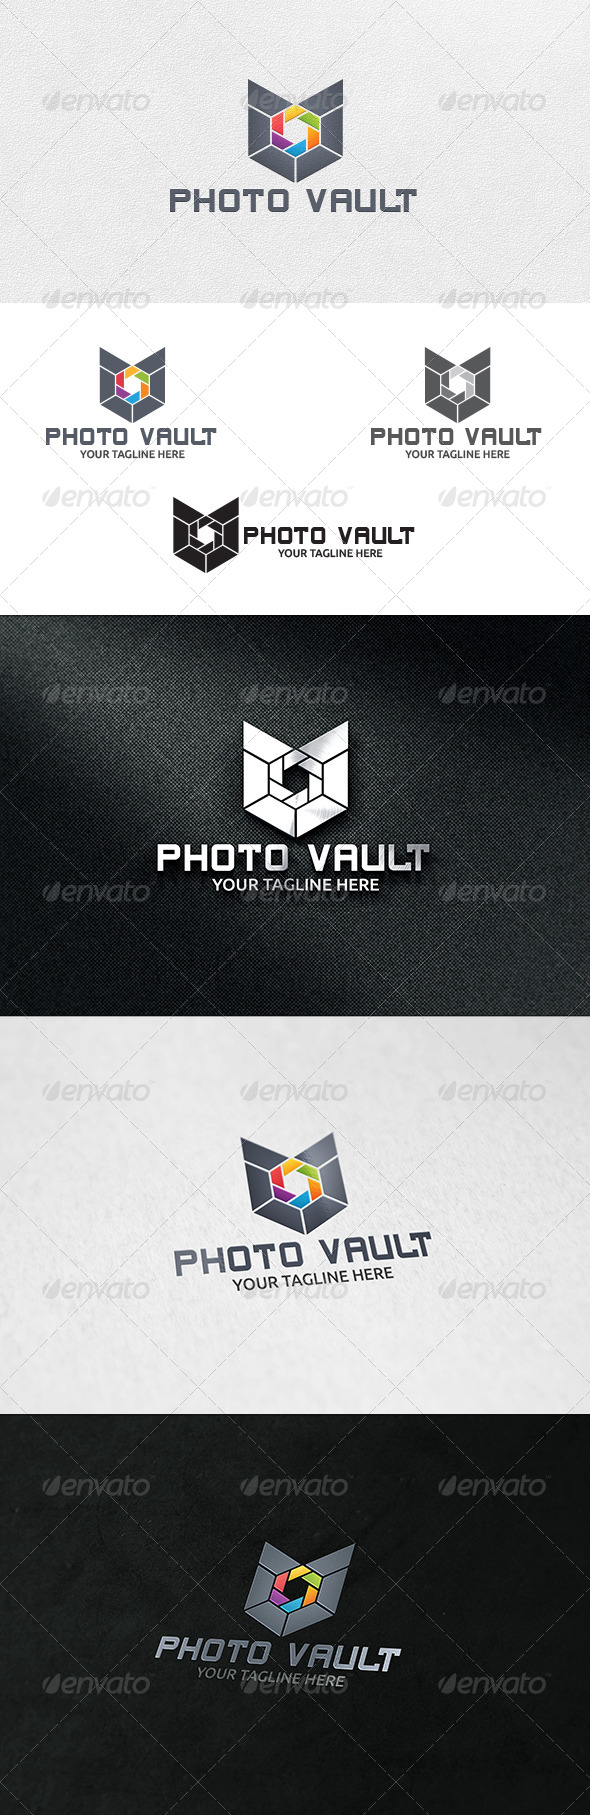 Photo Vault - Logo Template - Vector Abstract